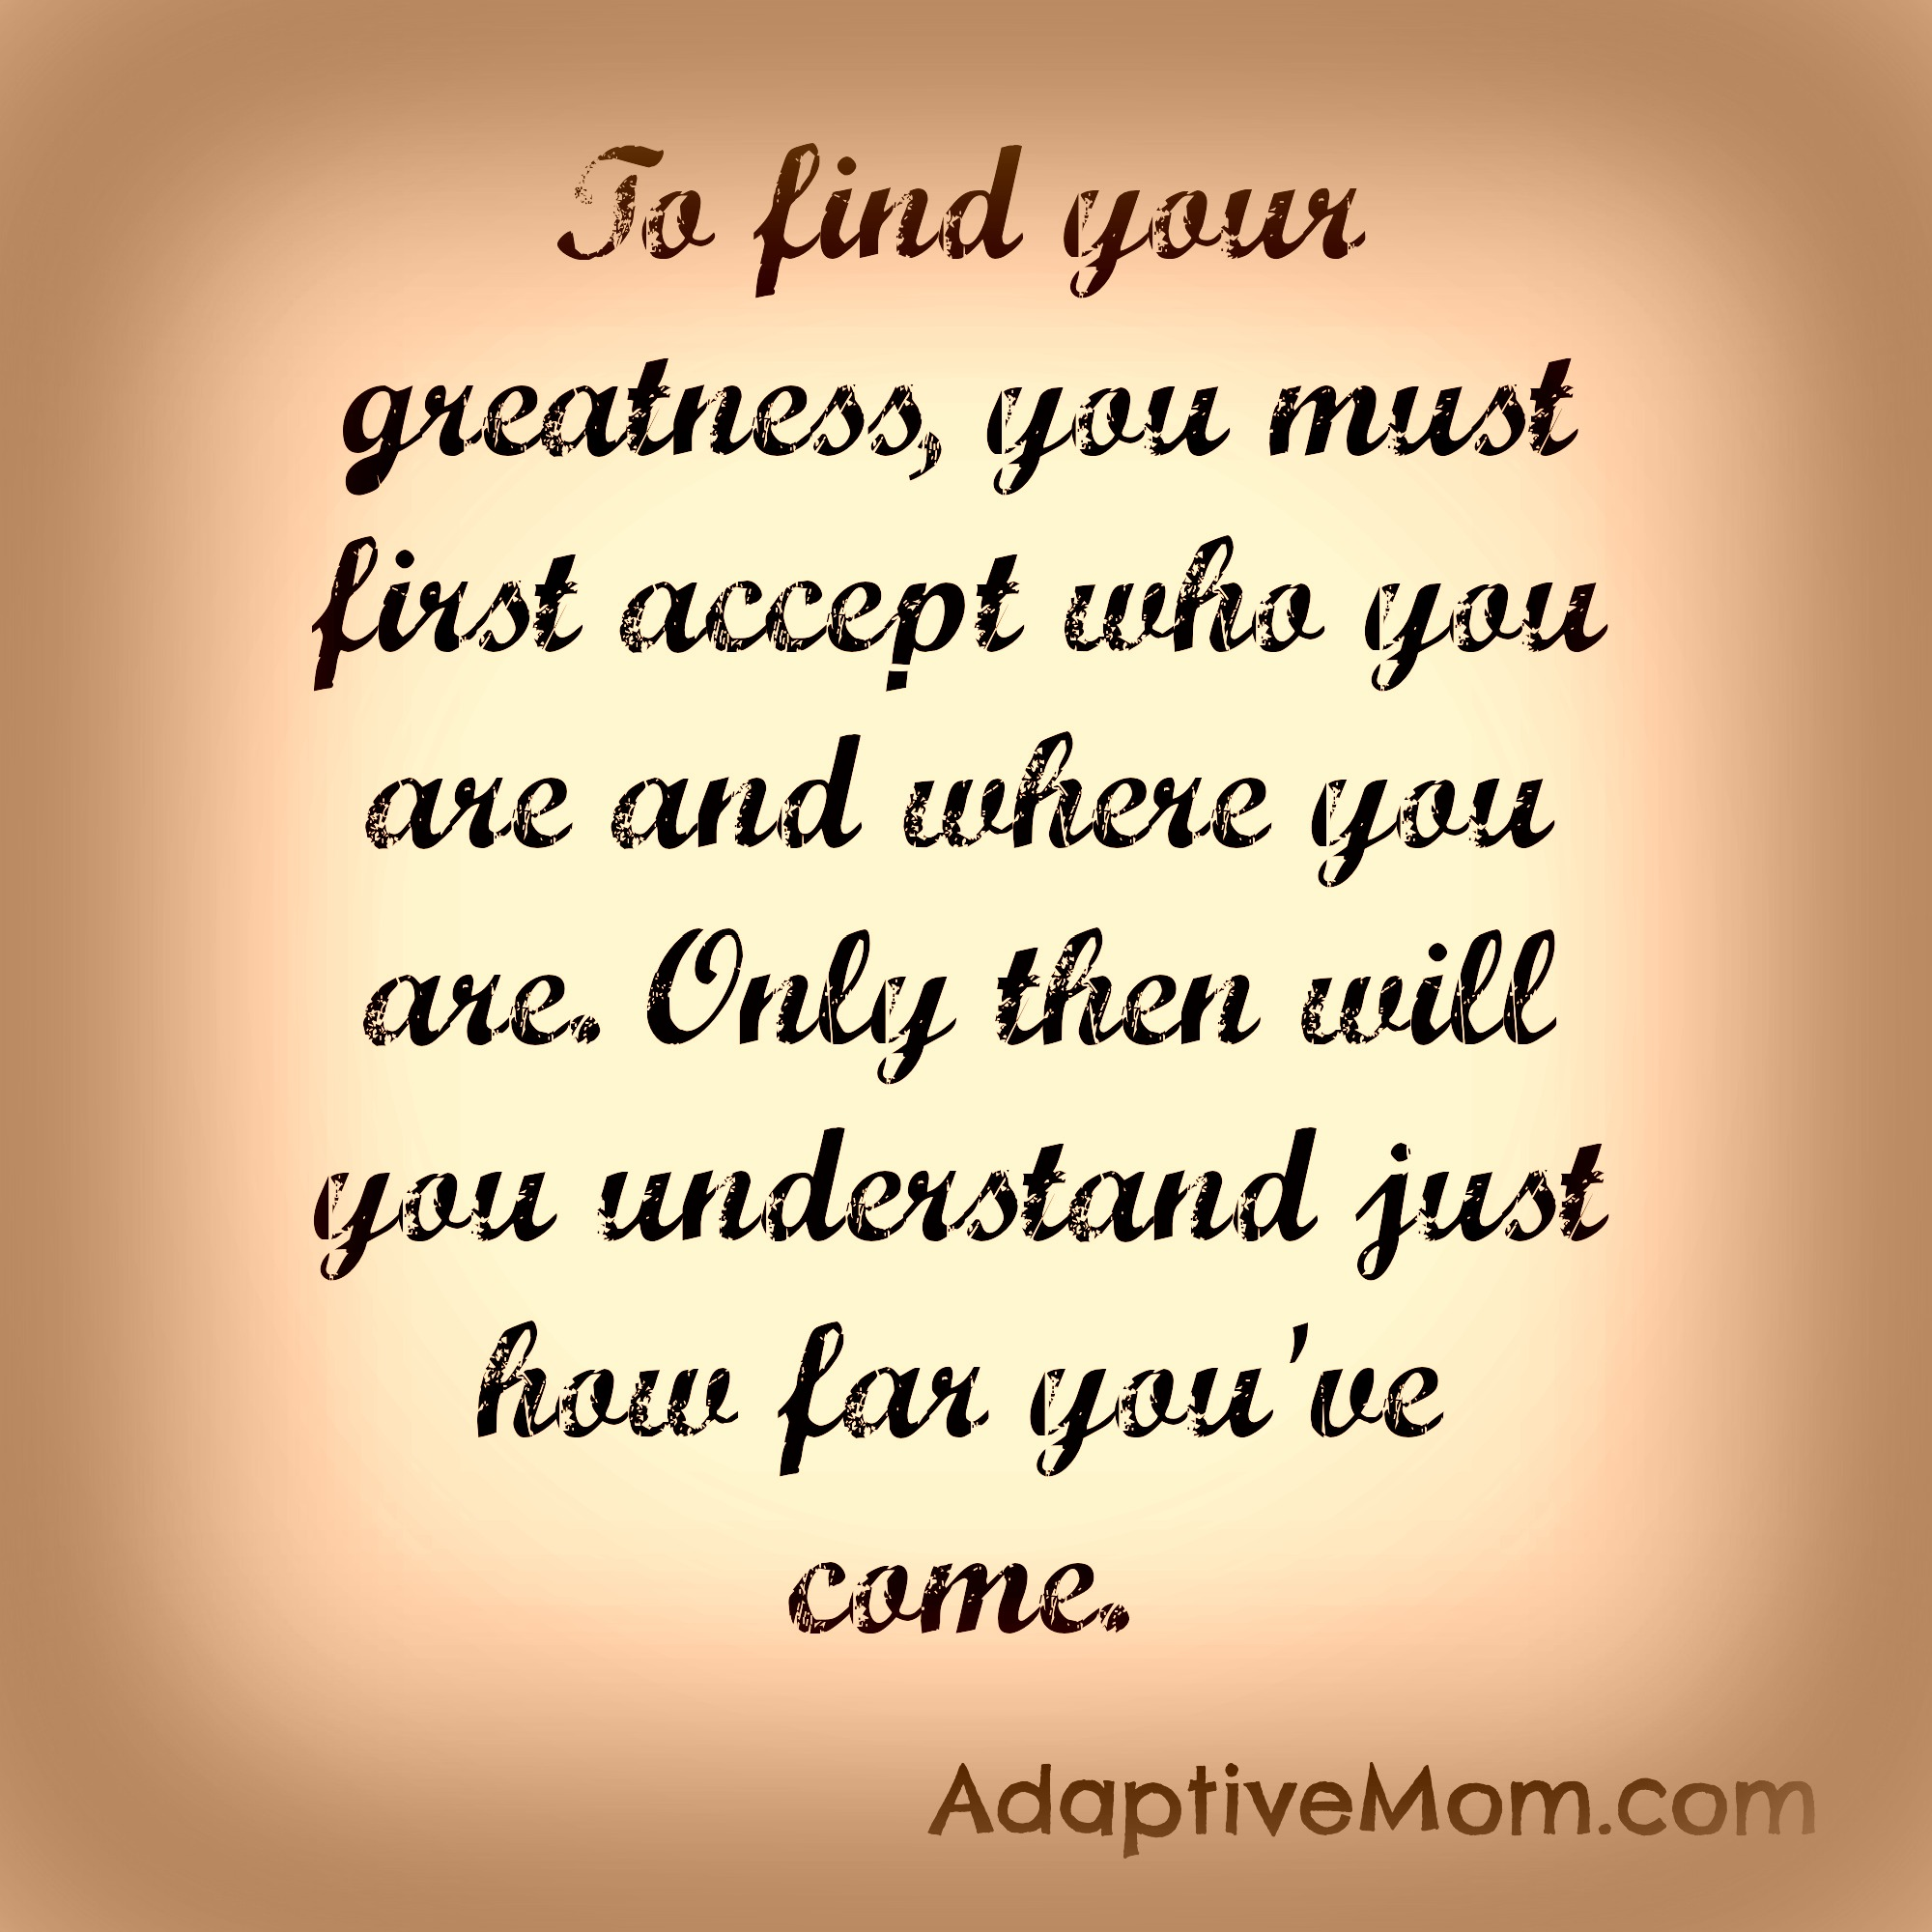 adaptivemom.com, be yourself, acceptance, love yourself, love the journey, workfromhomeorganically.com,